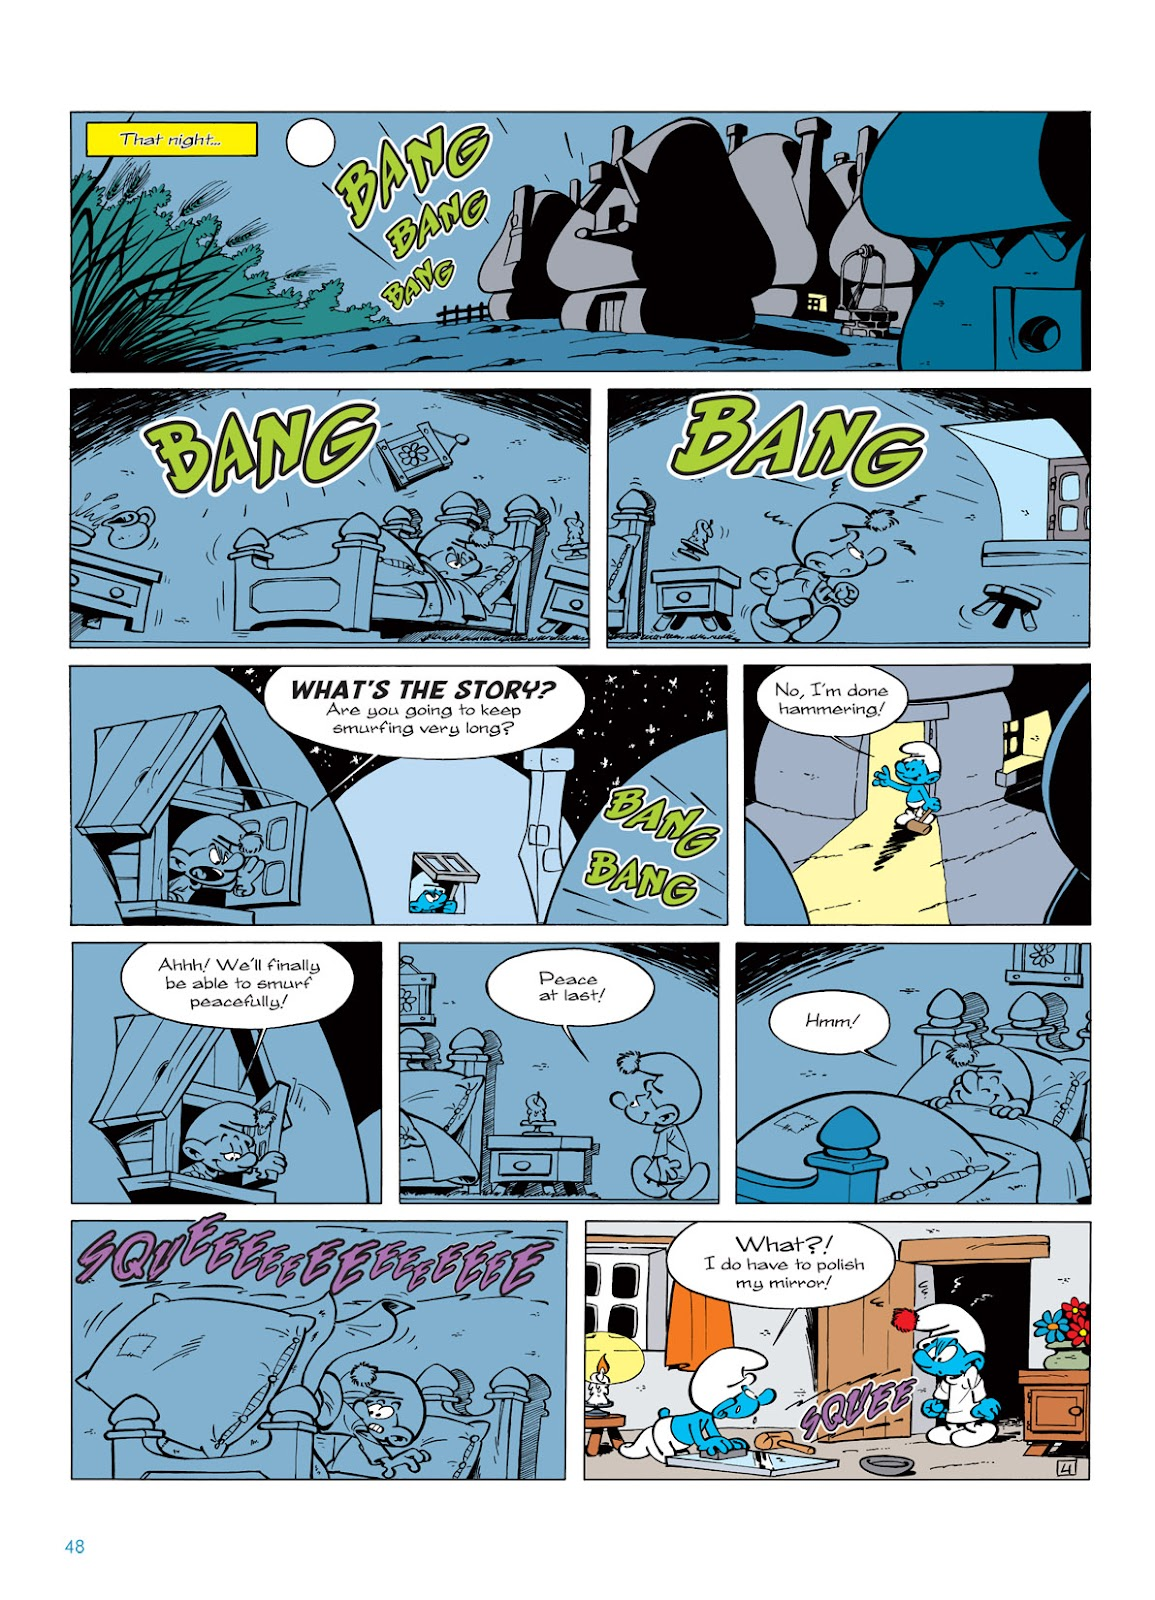 Read online The Smurfs comic -  Issue #5 - 48